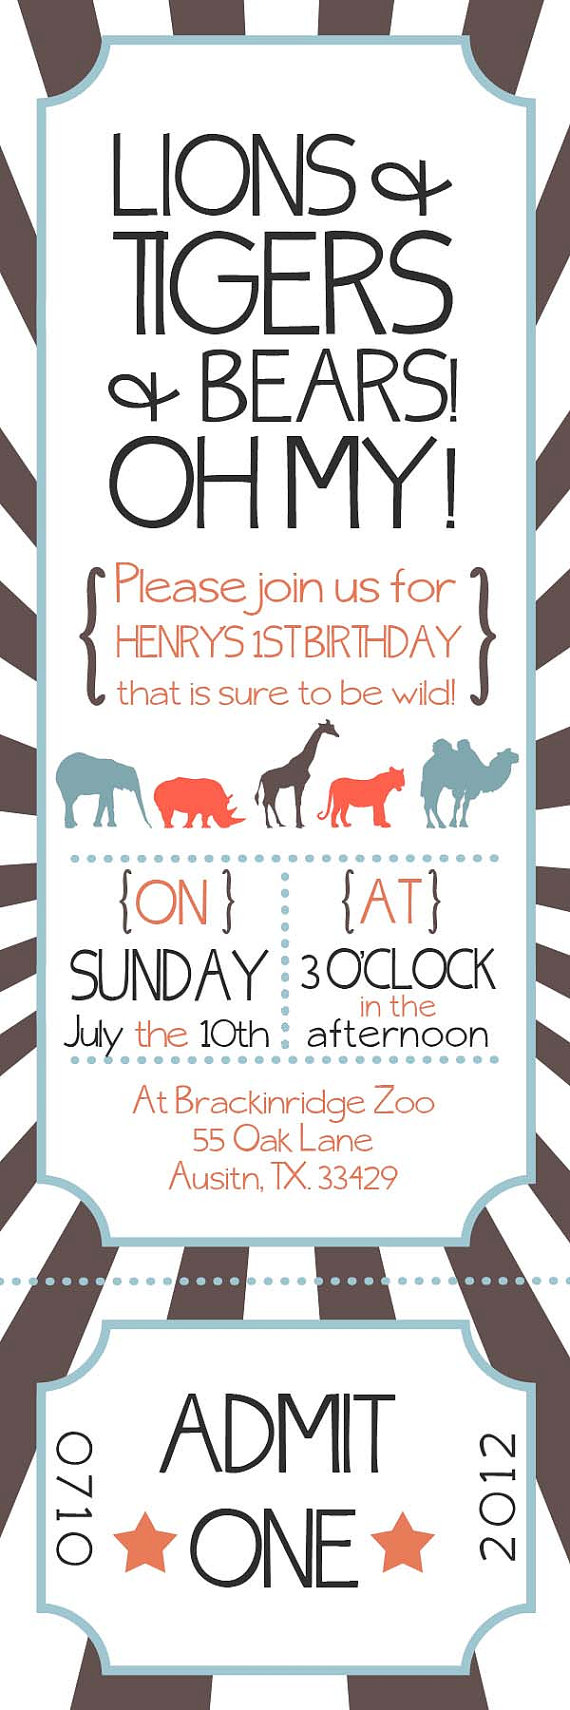 Zoo Ticket Birthday Party Invitation by withlovegreetings on Etsy ...